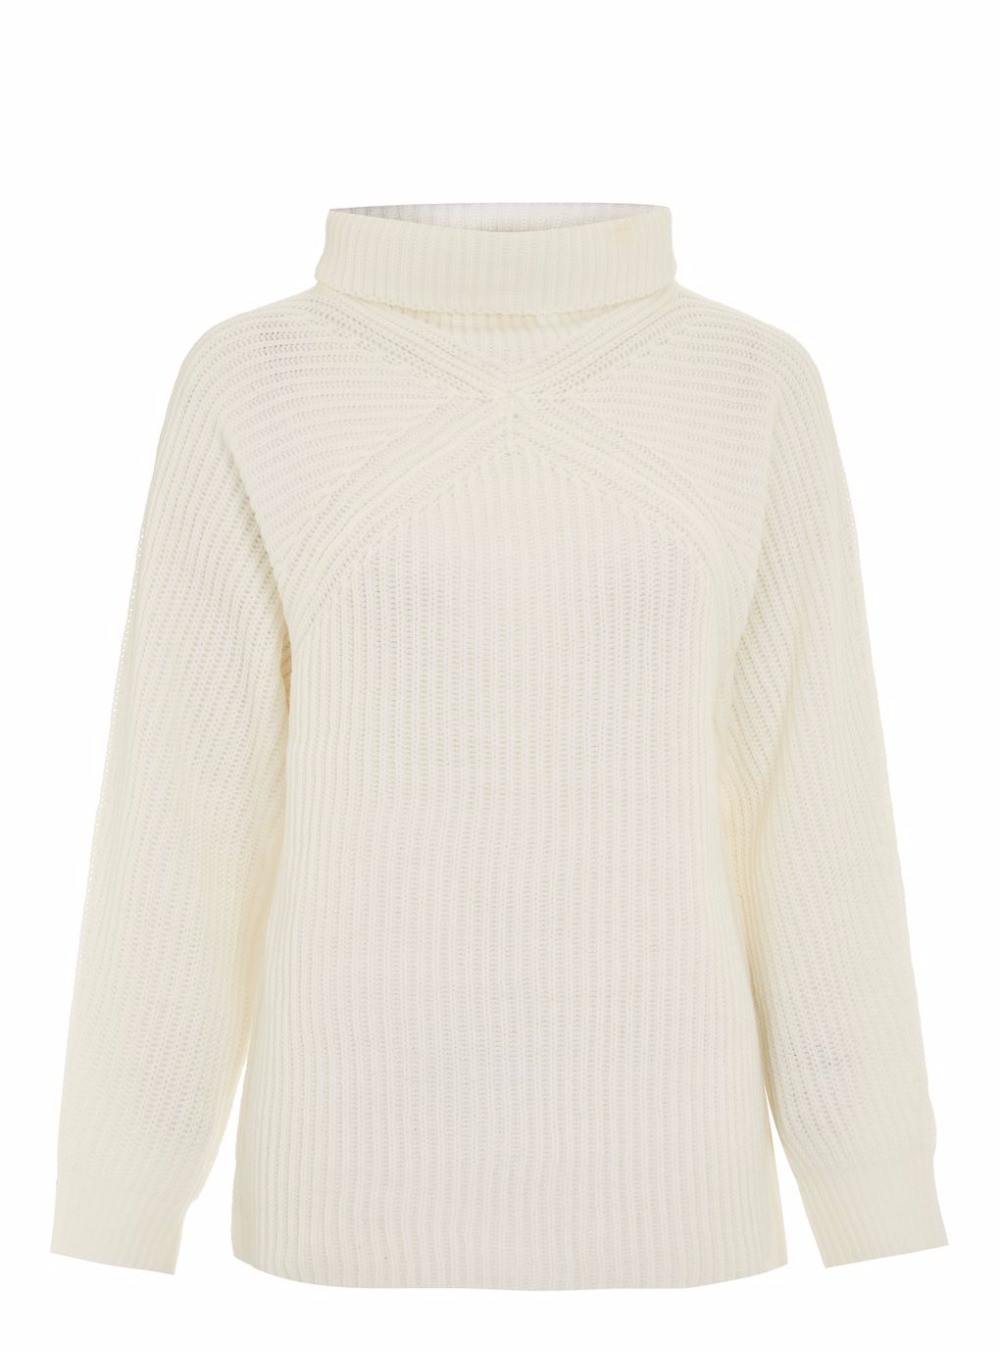 Topshop Roll Neck Ribbed Jumper